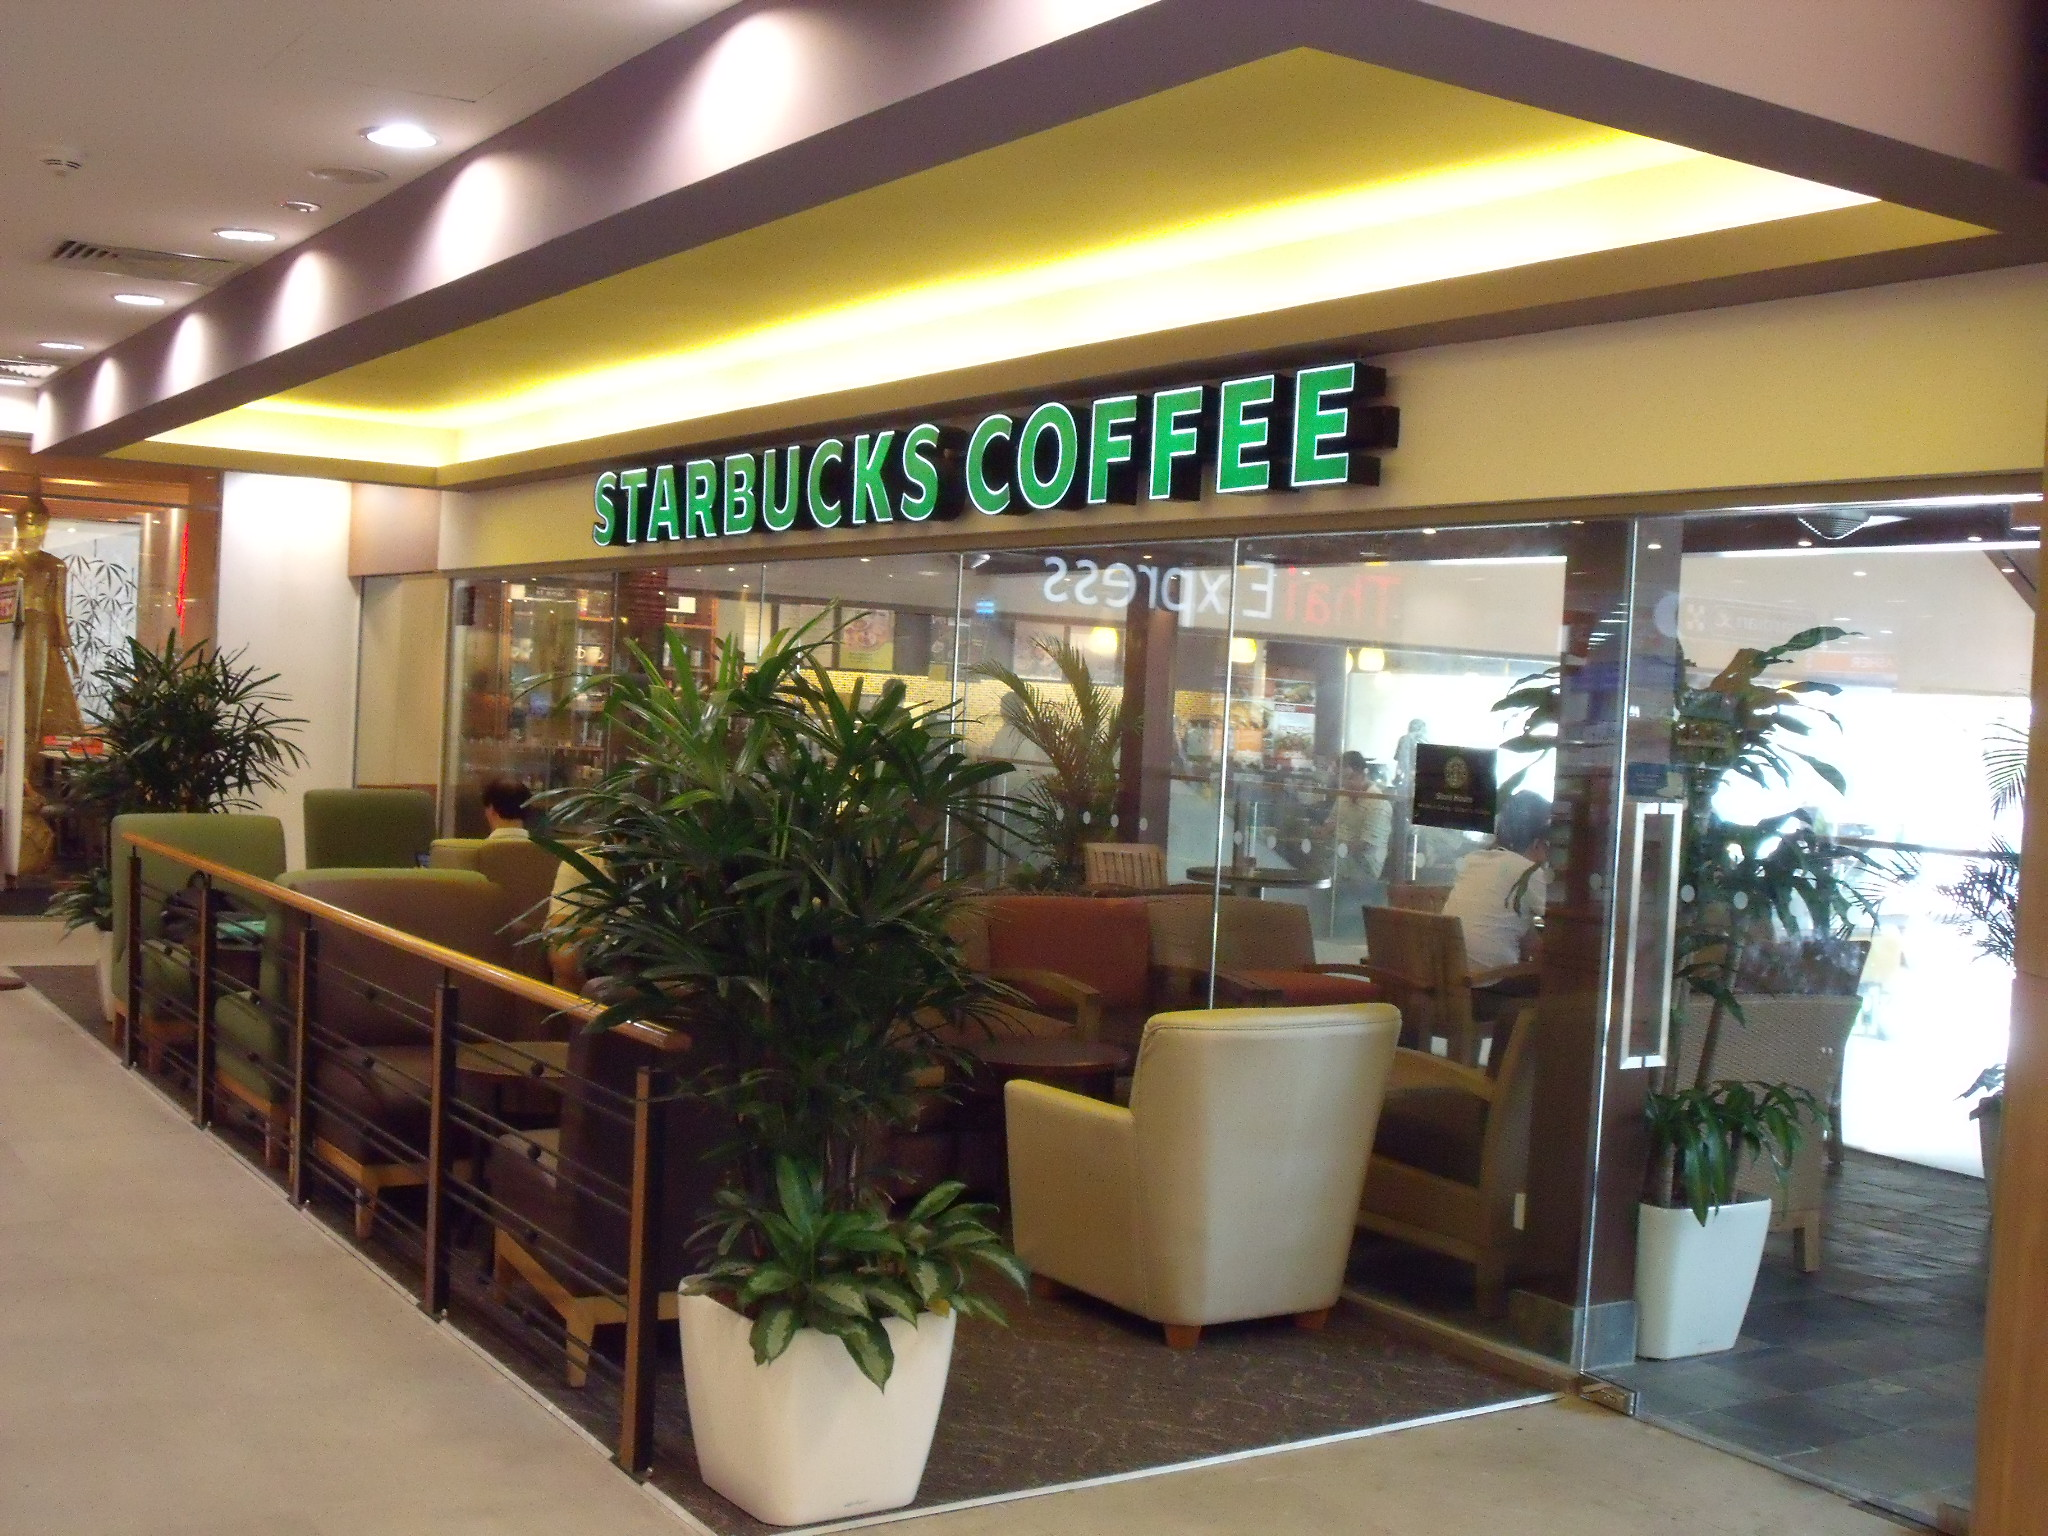 starbucks singapore case — redesigning the starbucks singapore app this case study article covers ux research including creating customer personas and customer journey maps to redesign an existing mobile app for a food.